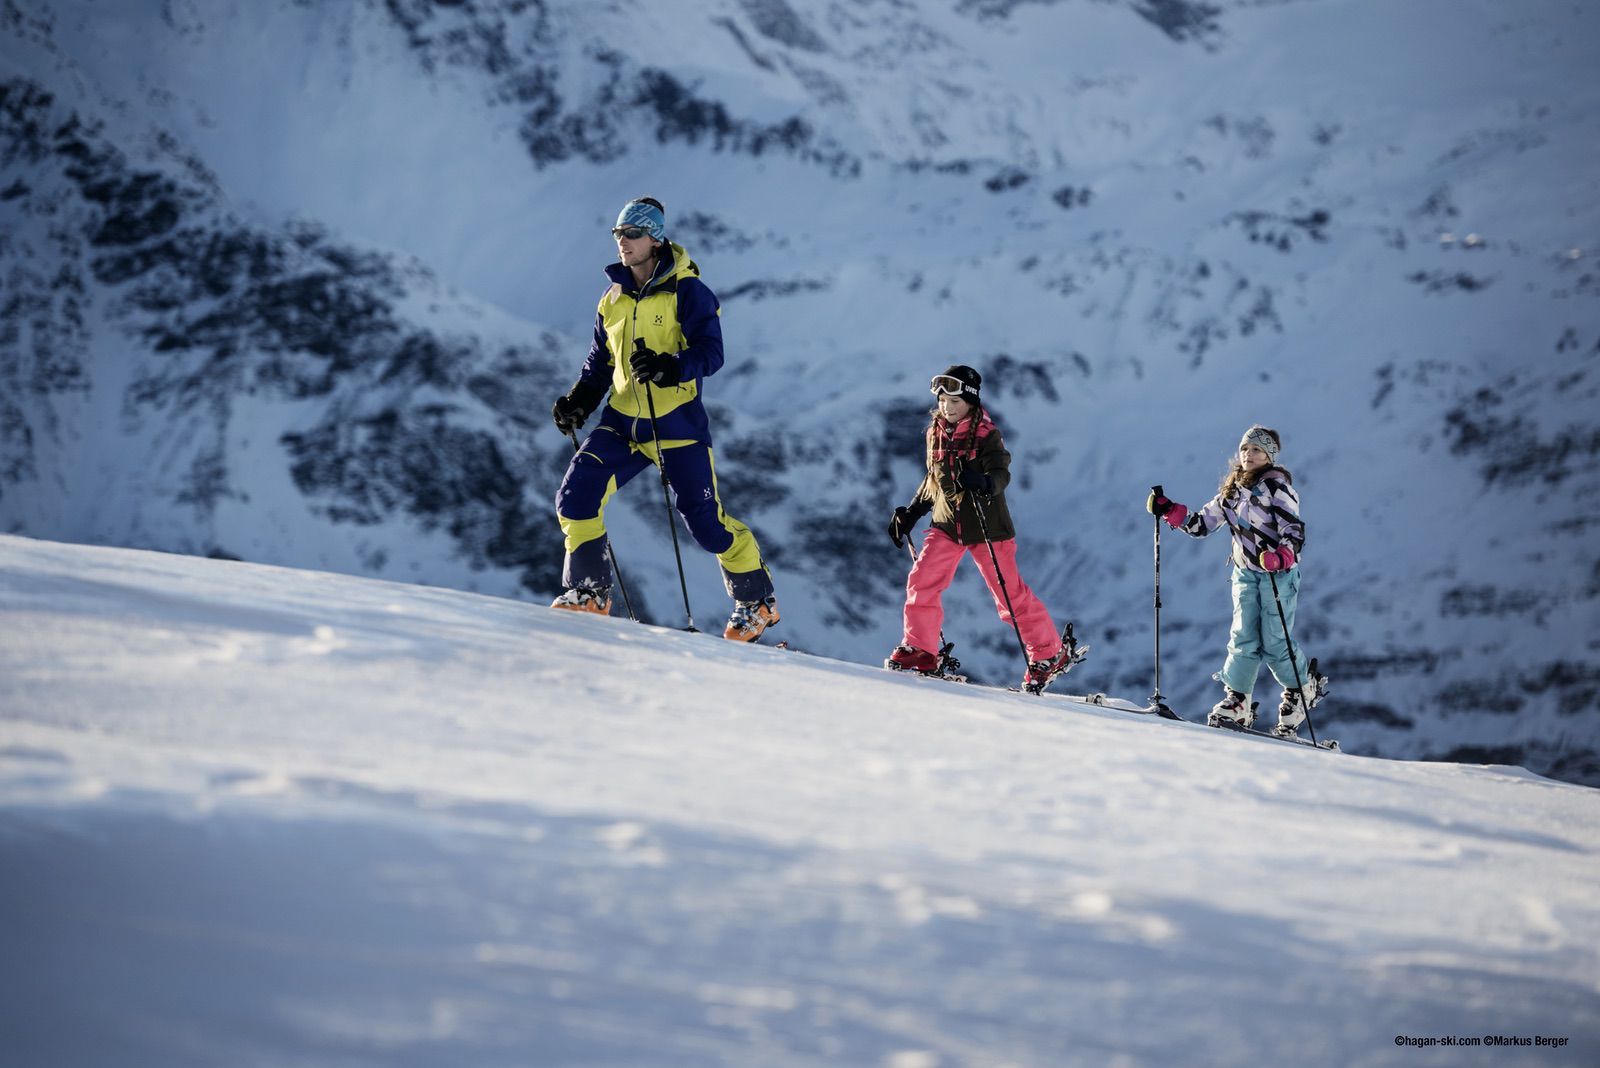 Kids alpine ski touring on Hagan Junior ski gear